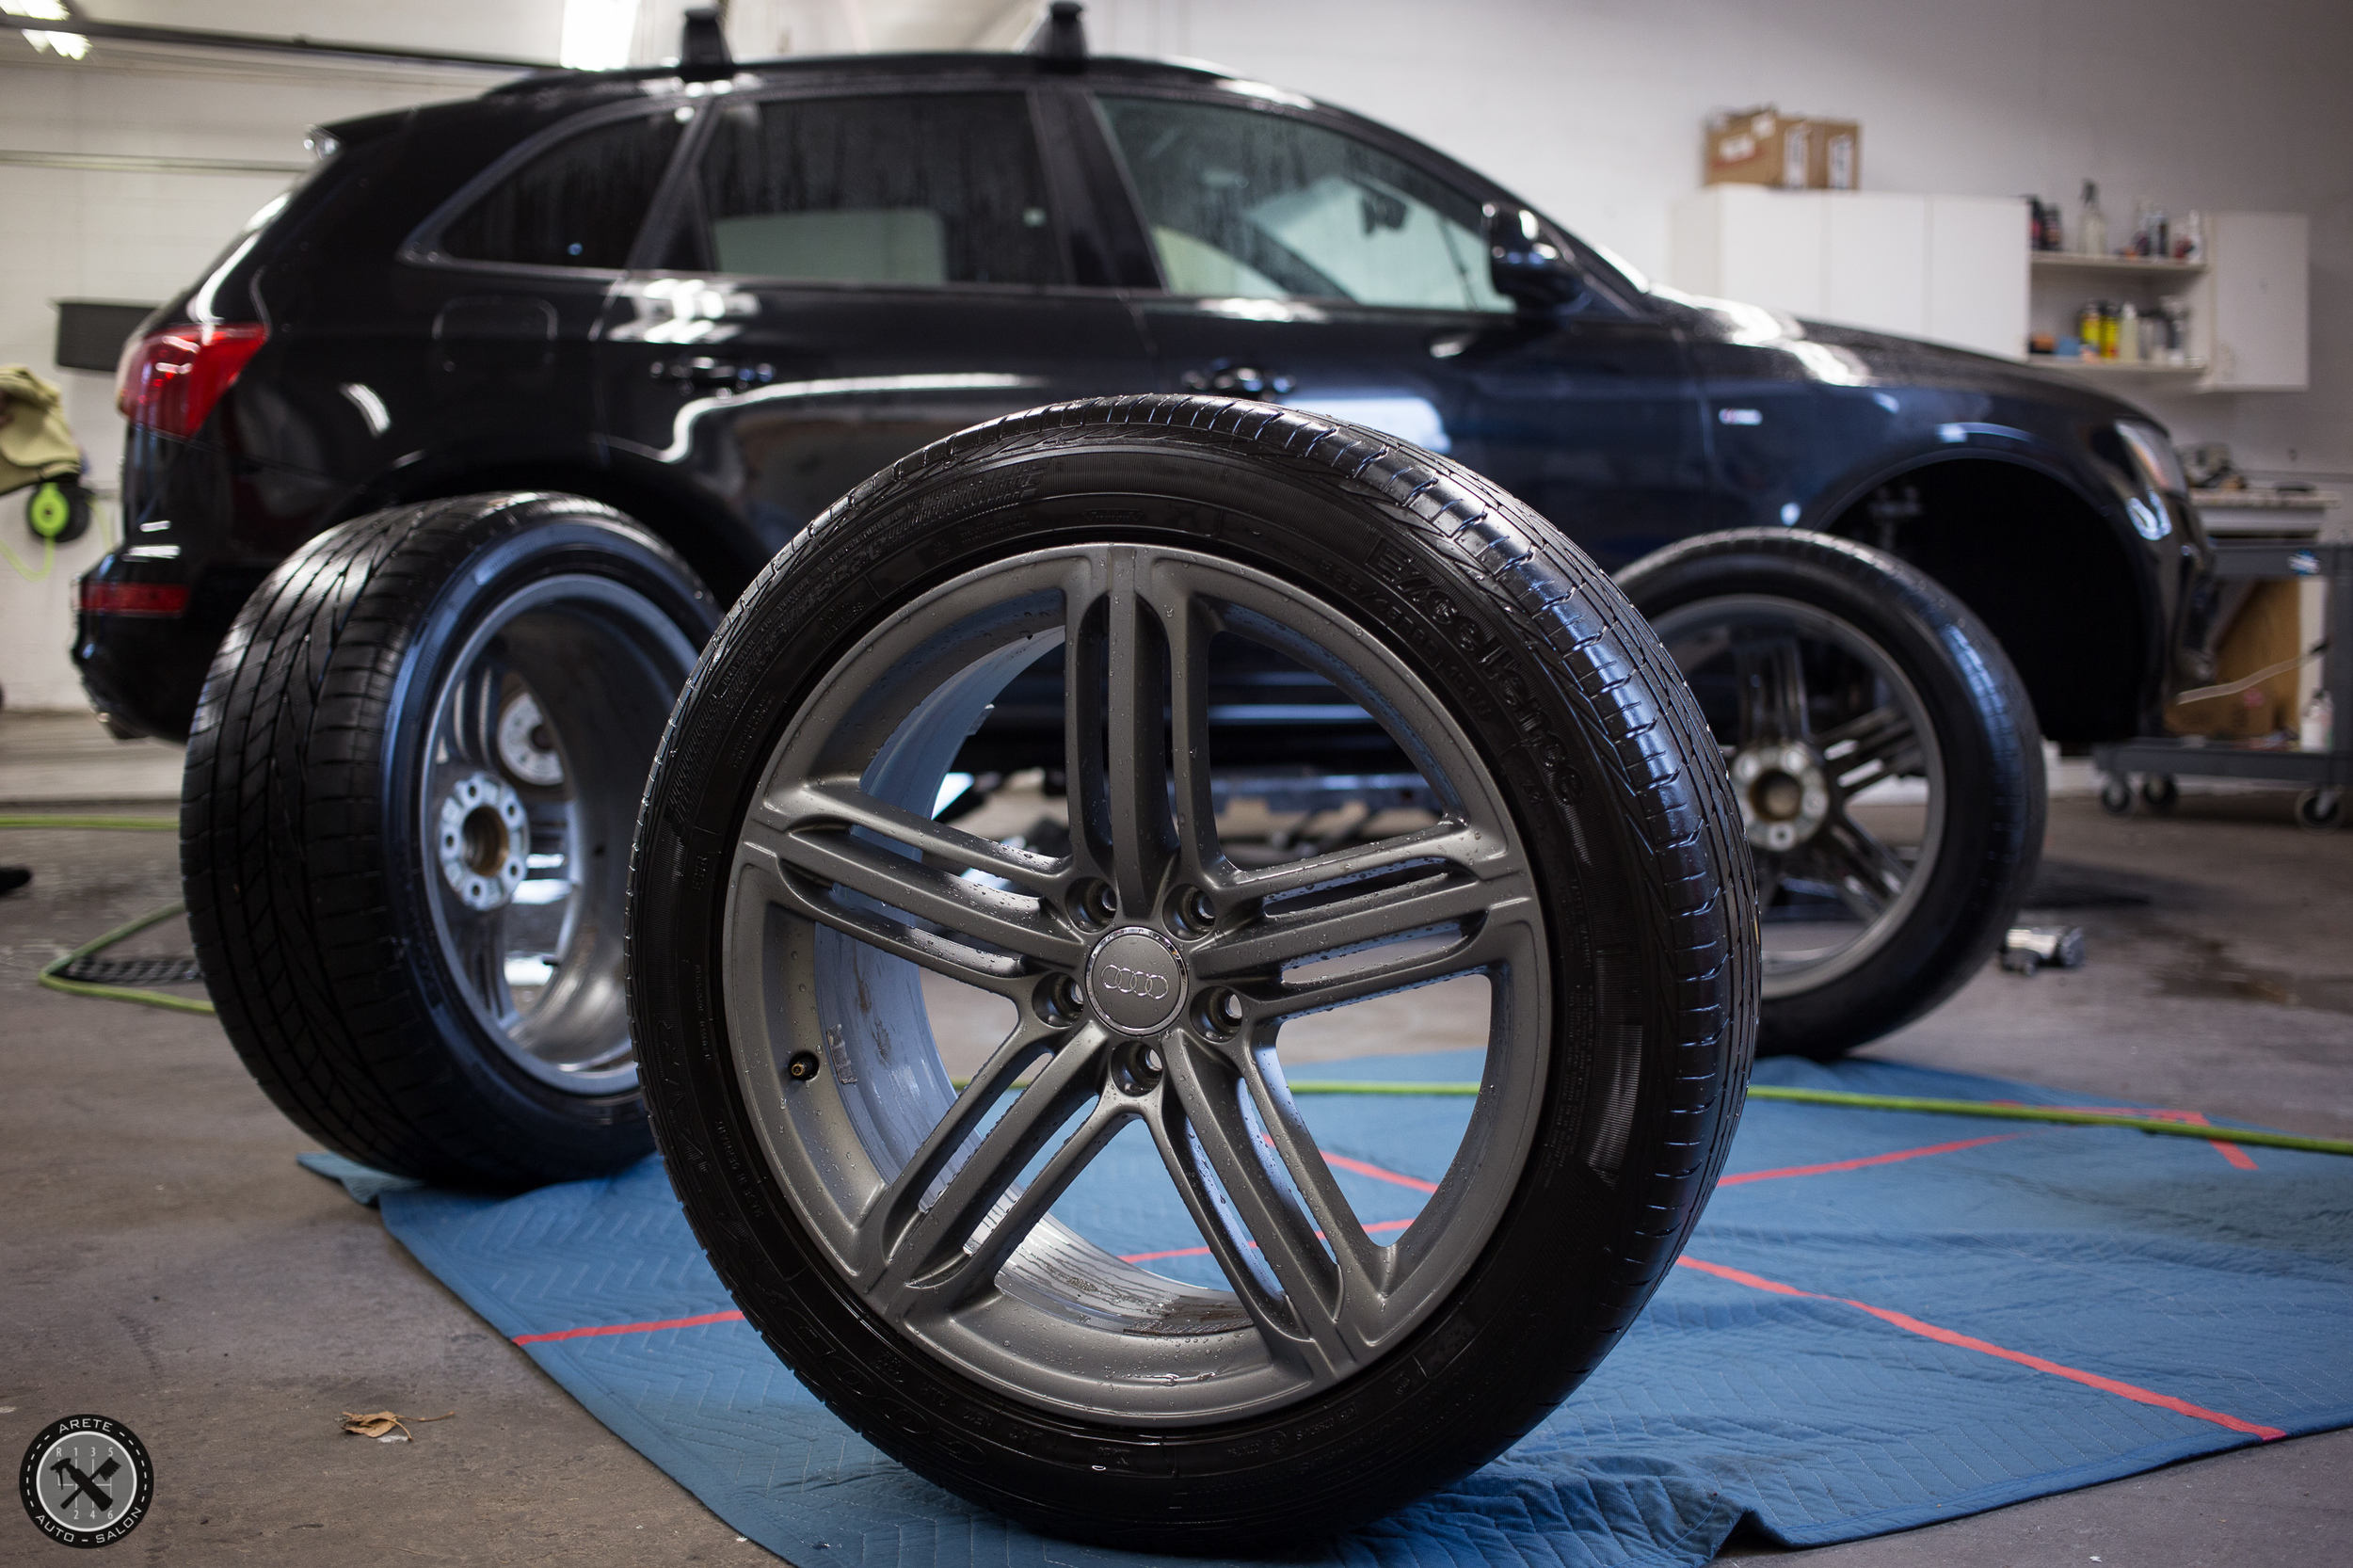 After the wheels were removed from the vehicle, a second decontamination was performed to prepare for coating in CQuartz Finest.